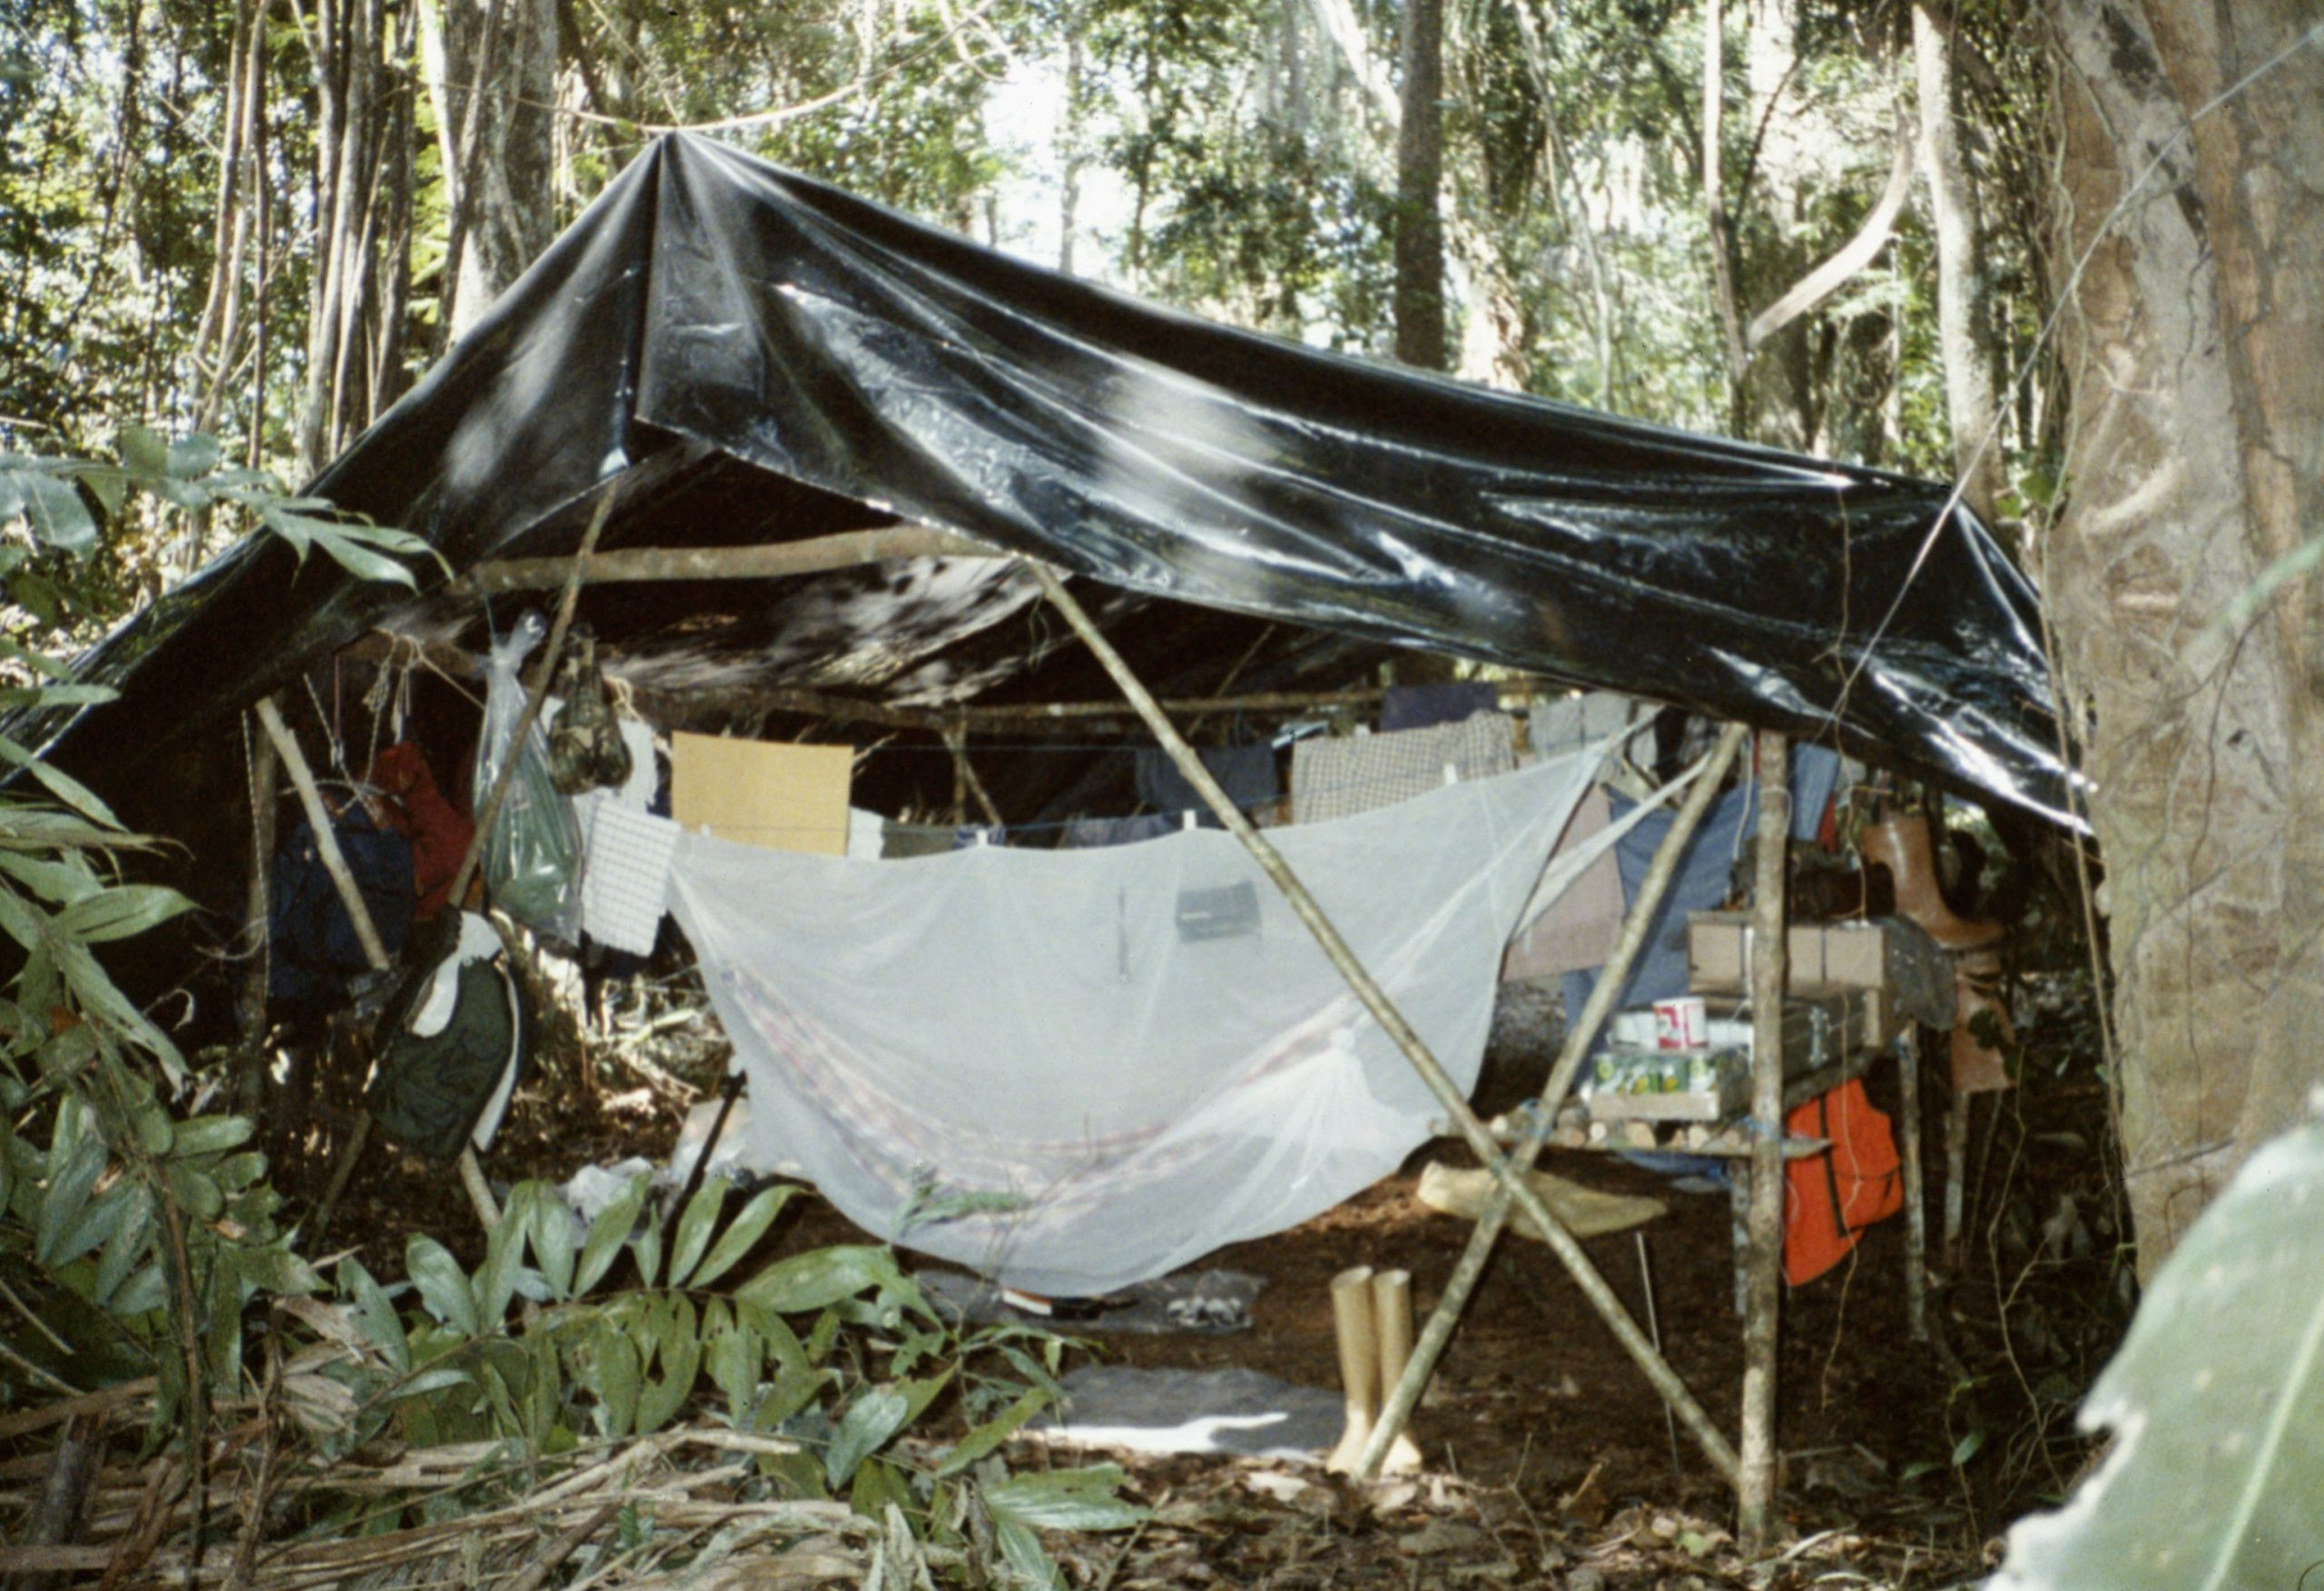 Jungle Camp, Piston de Uroy, Venezuela